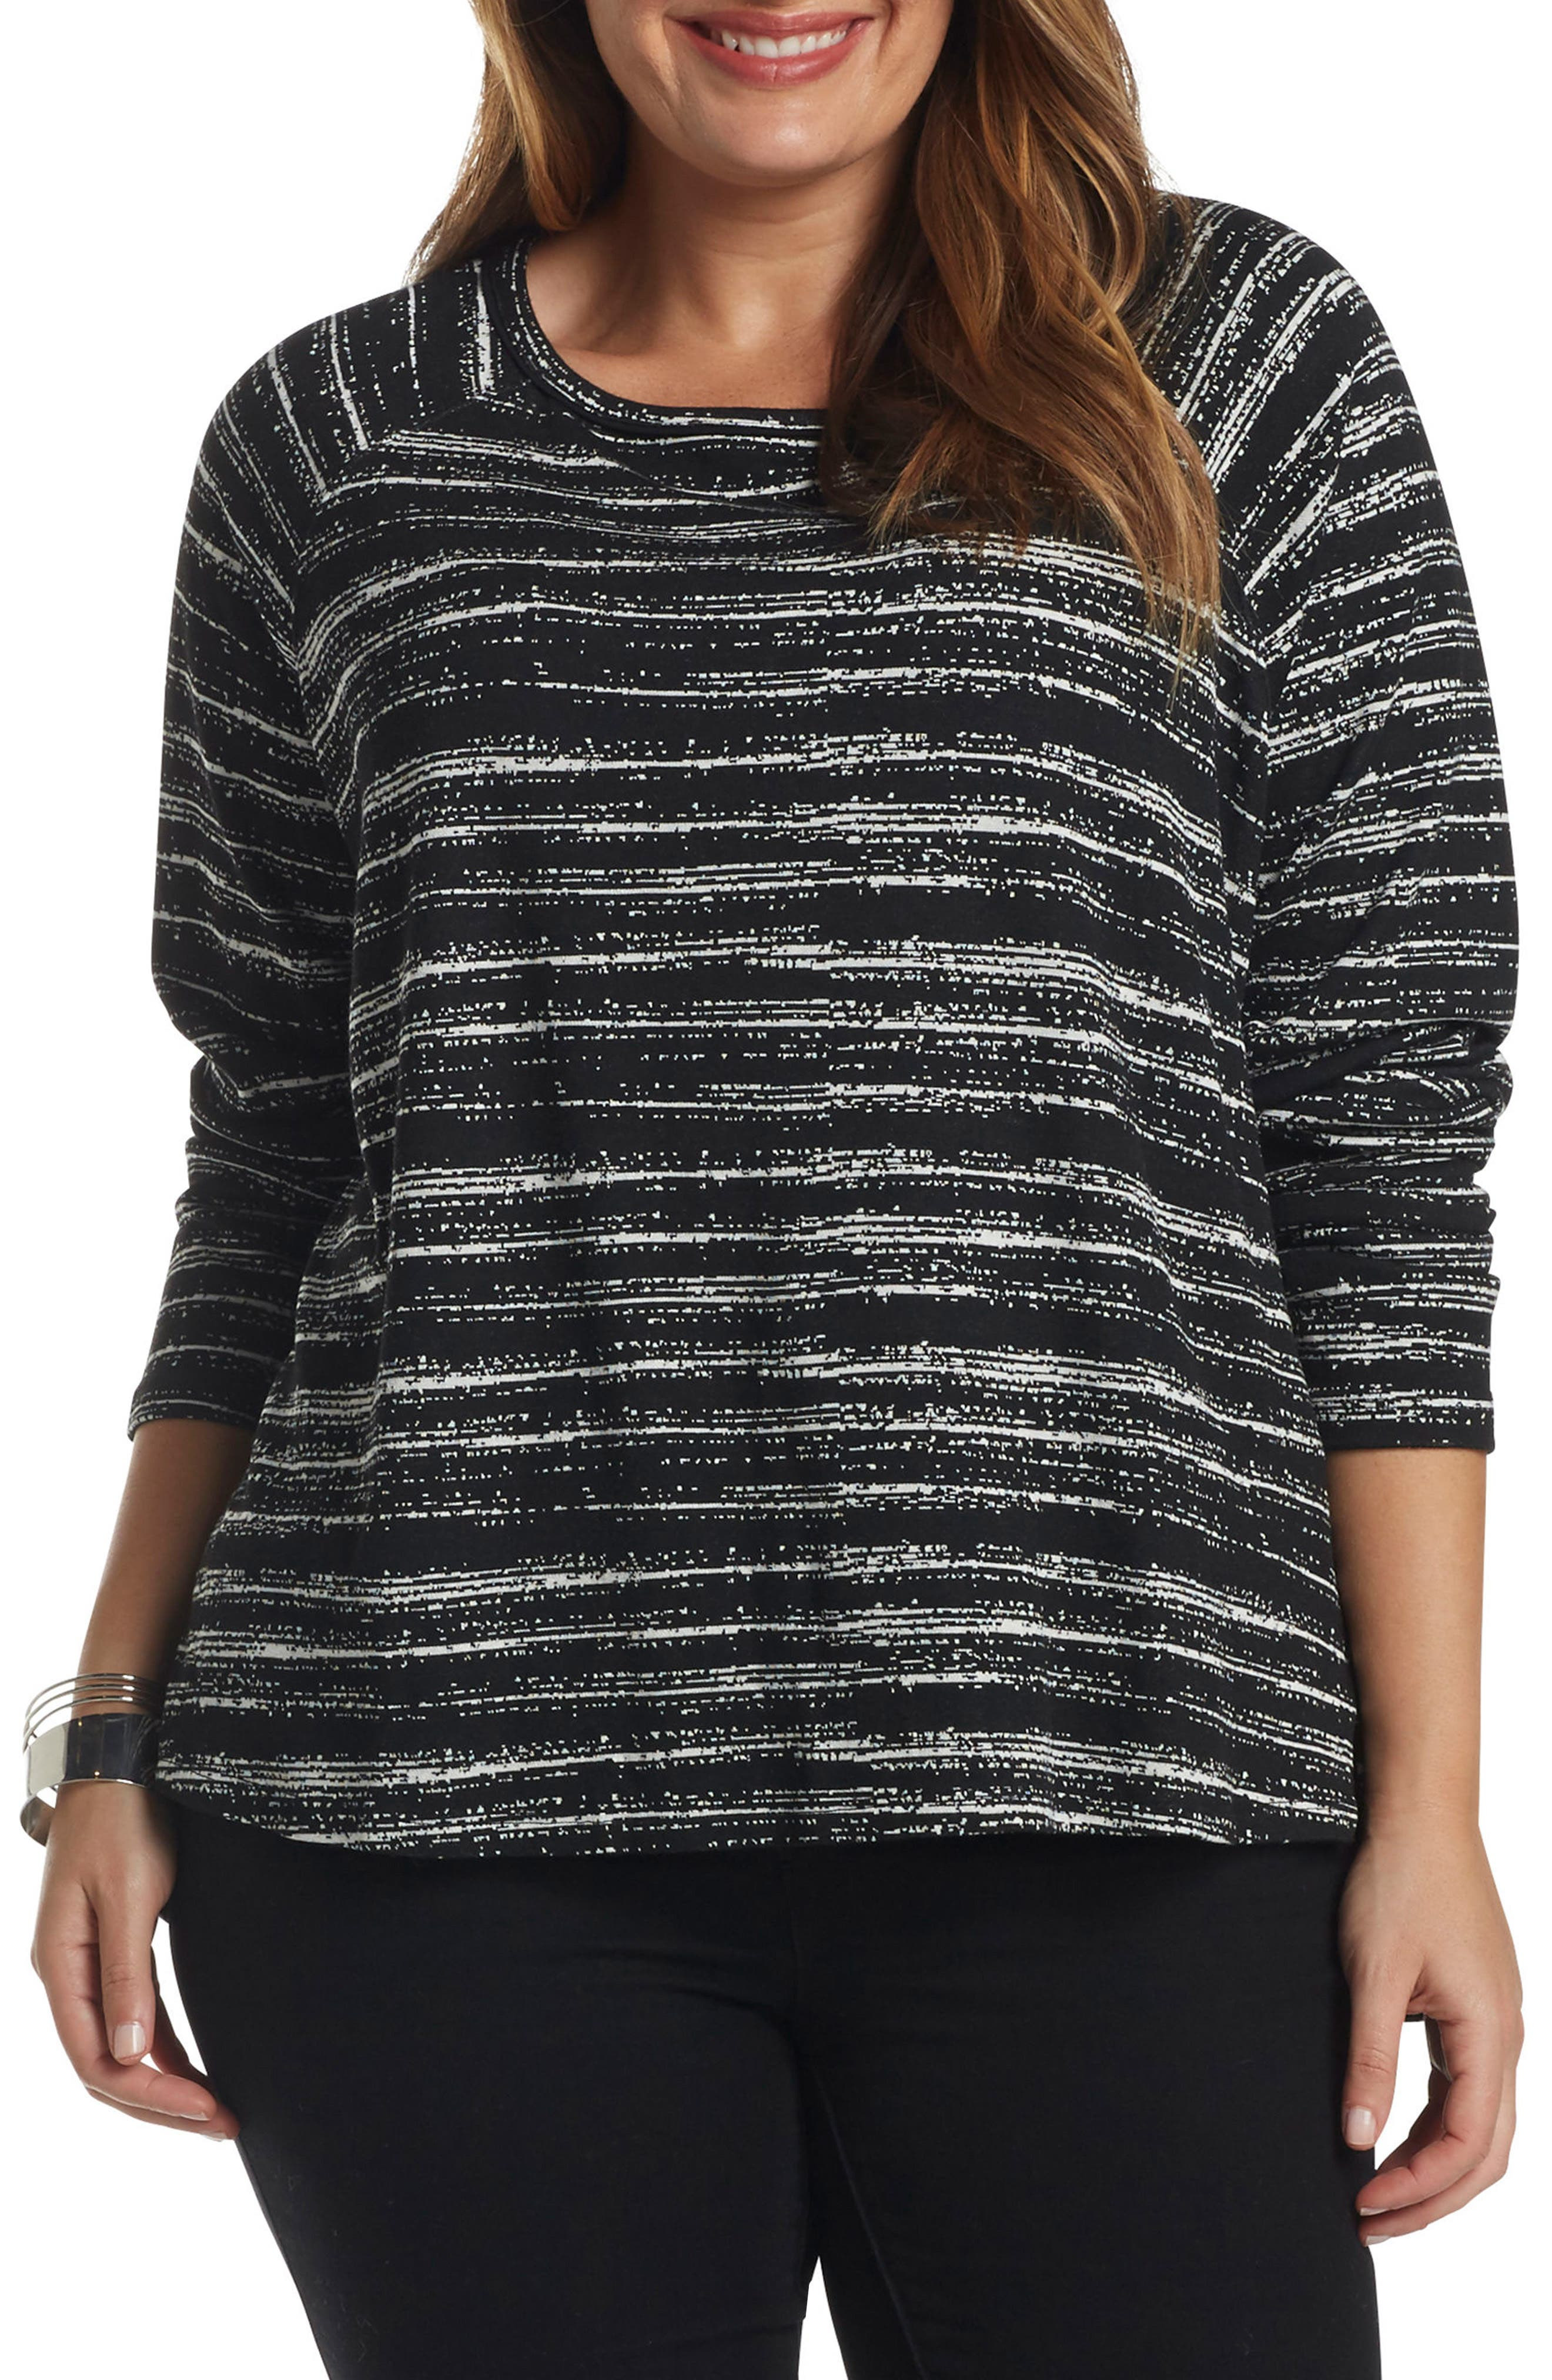 Rica Stretch Knit Top,                             Main thumbnail 1, color,                             008